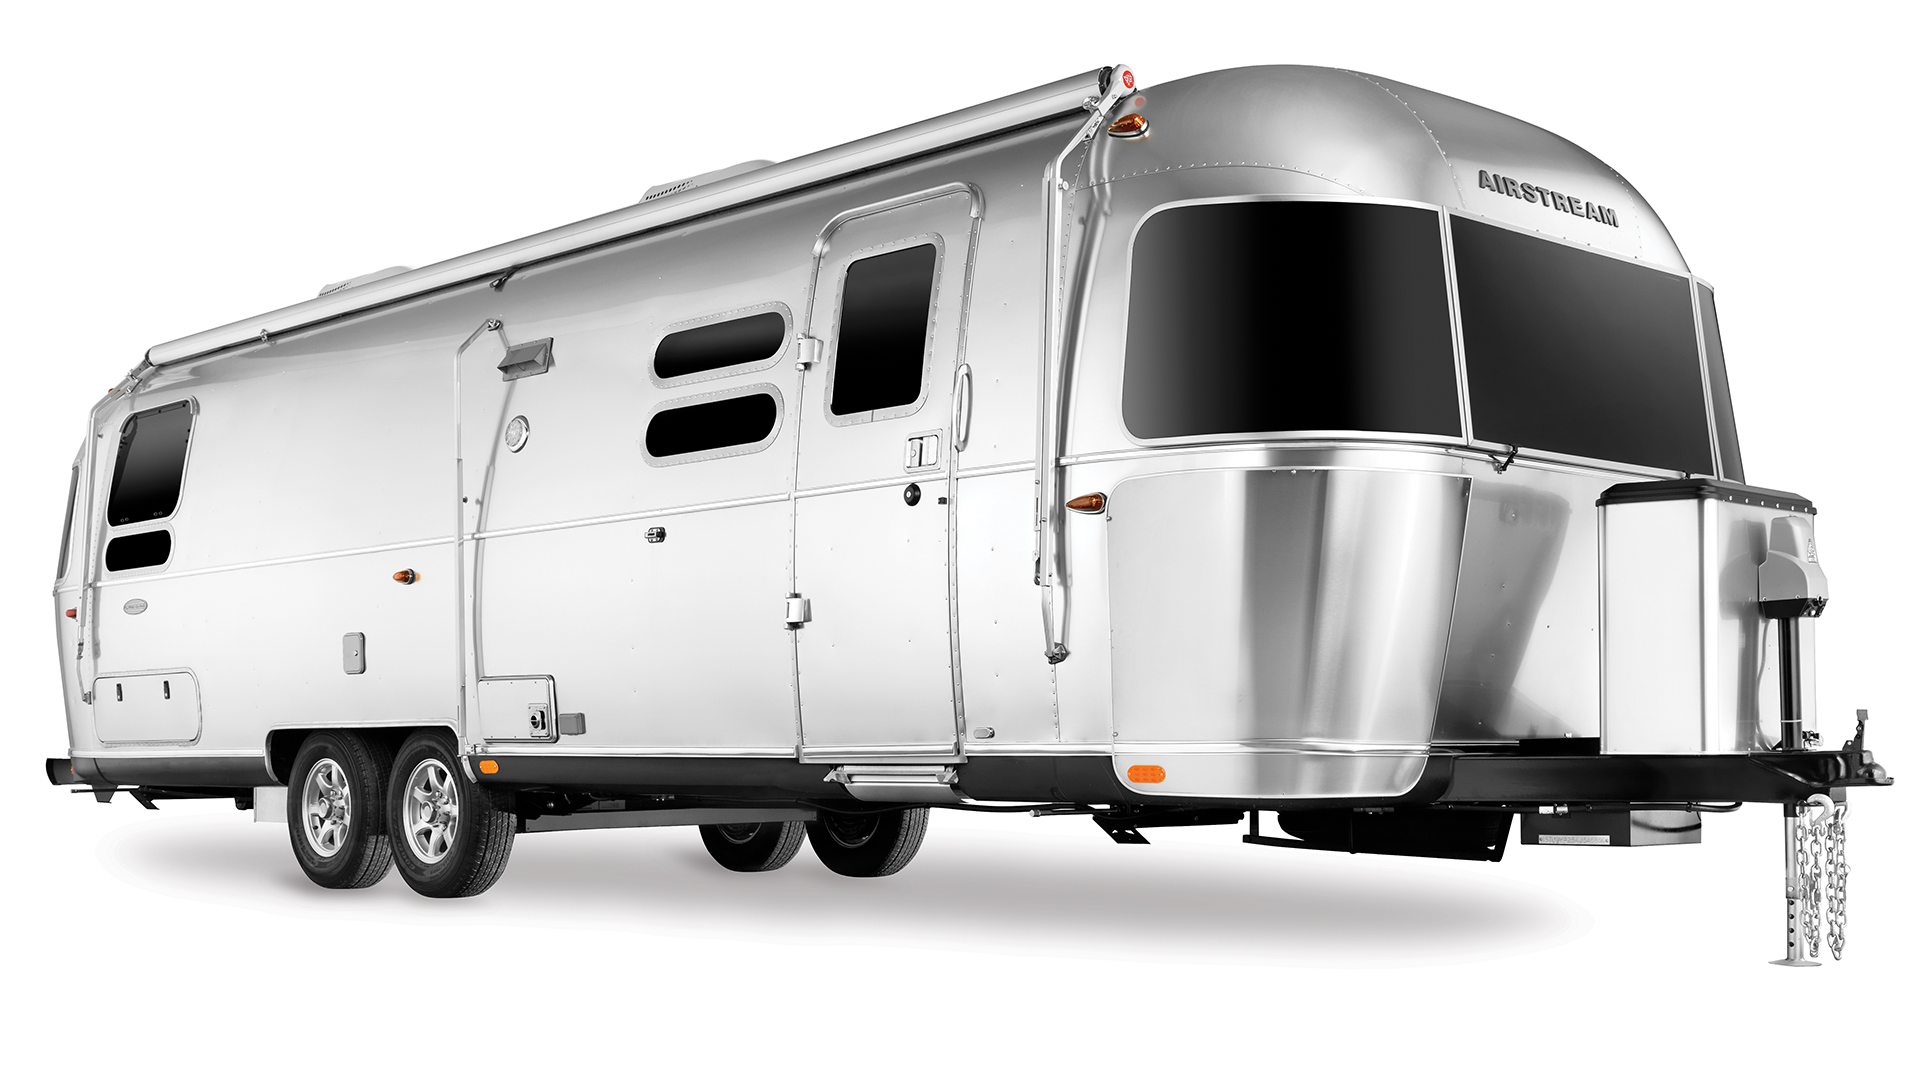 Airstream-Travel-Trailer-30RB-Twin-Travel-Trailer-Exterior